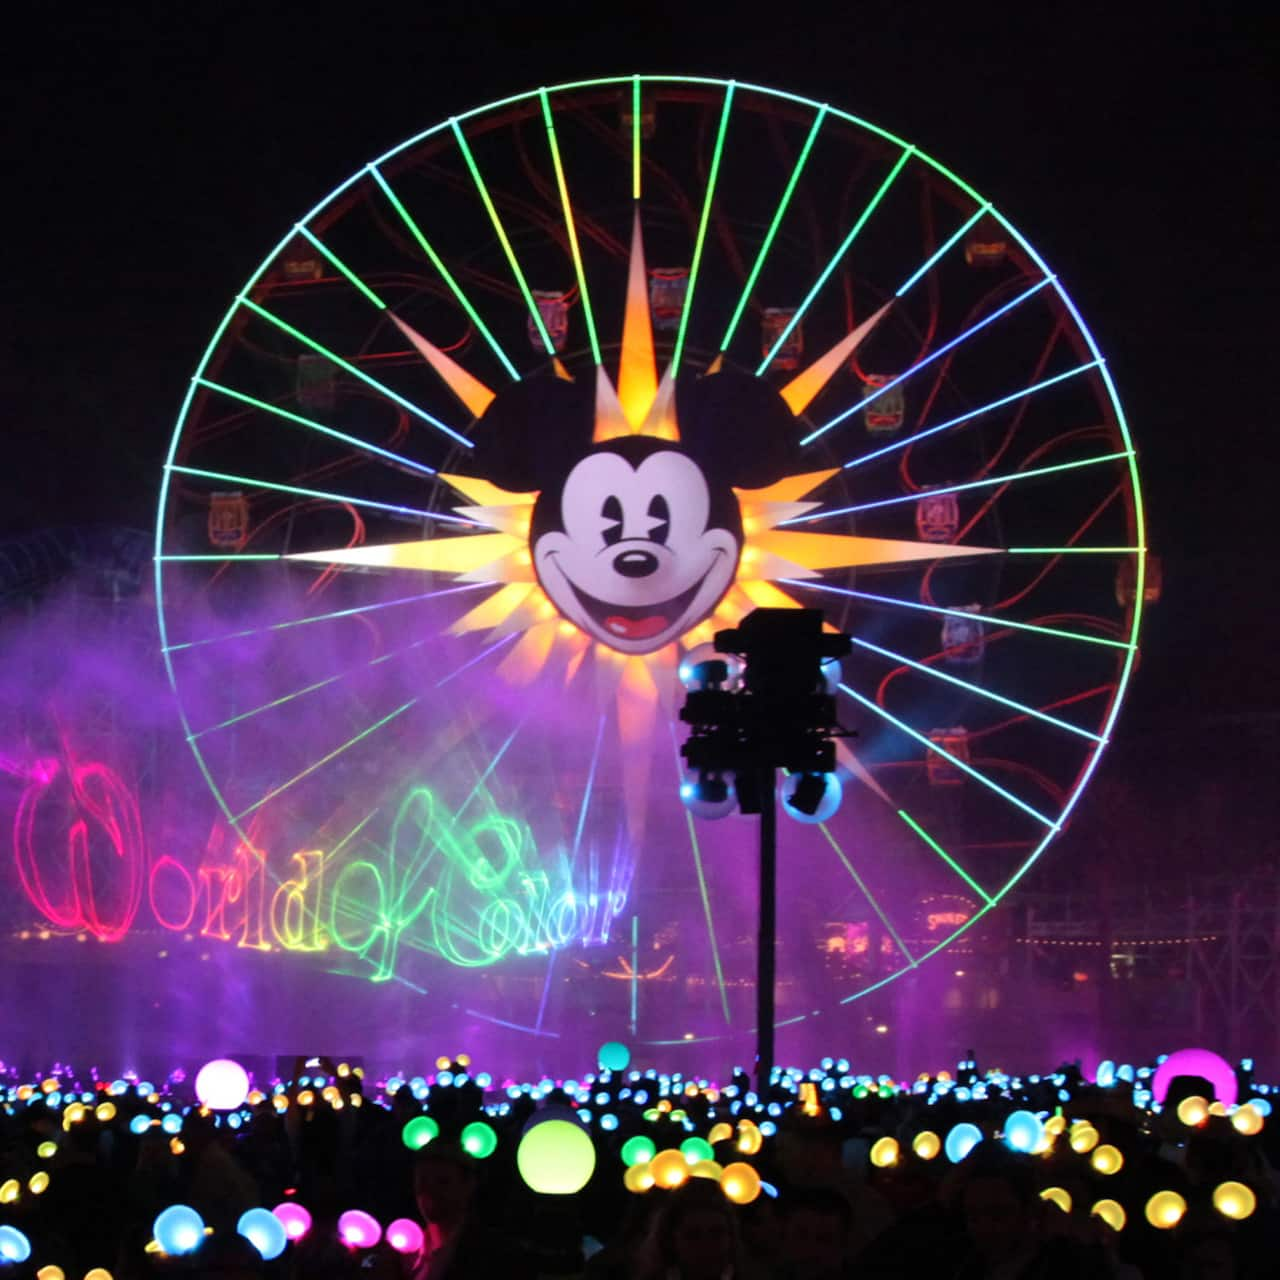 Dancing lights, streams of fire and an array of colors on the waters of the World of Color show at Disney California Adventure